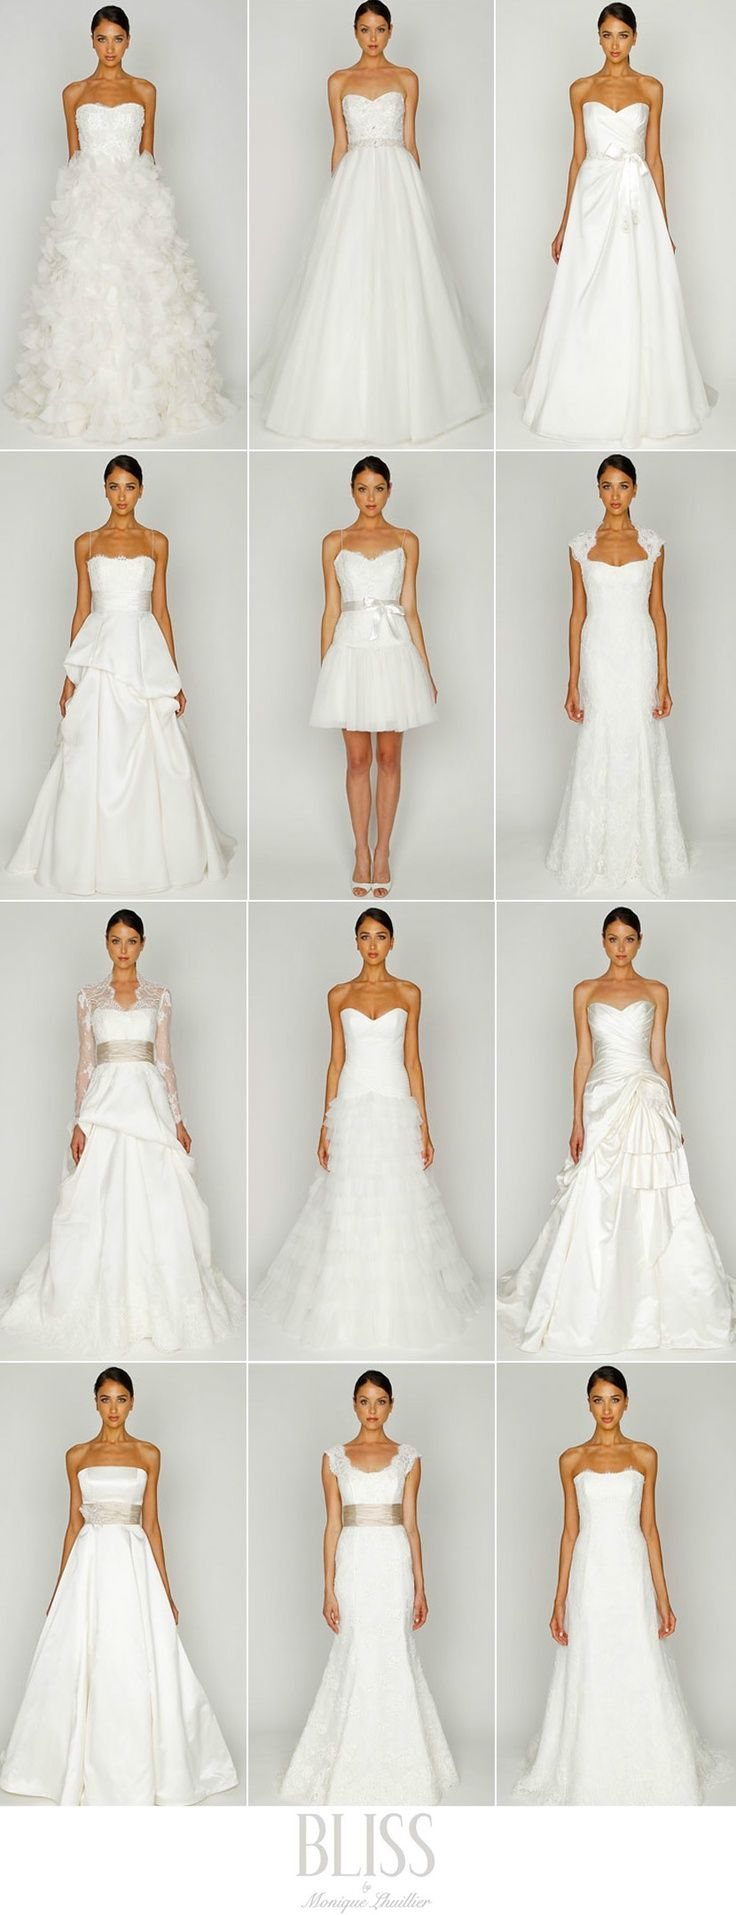 Wedding Dress Shapes Good Guide To Look At Before You Go Hunting For Your